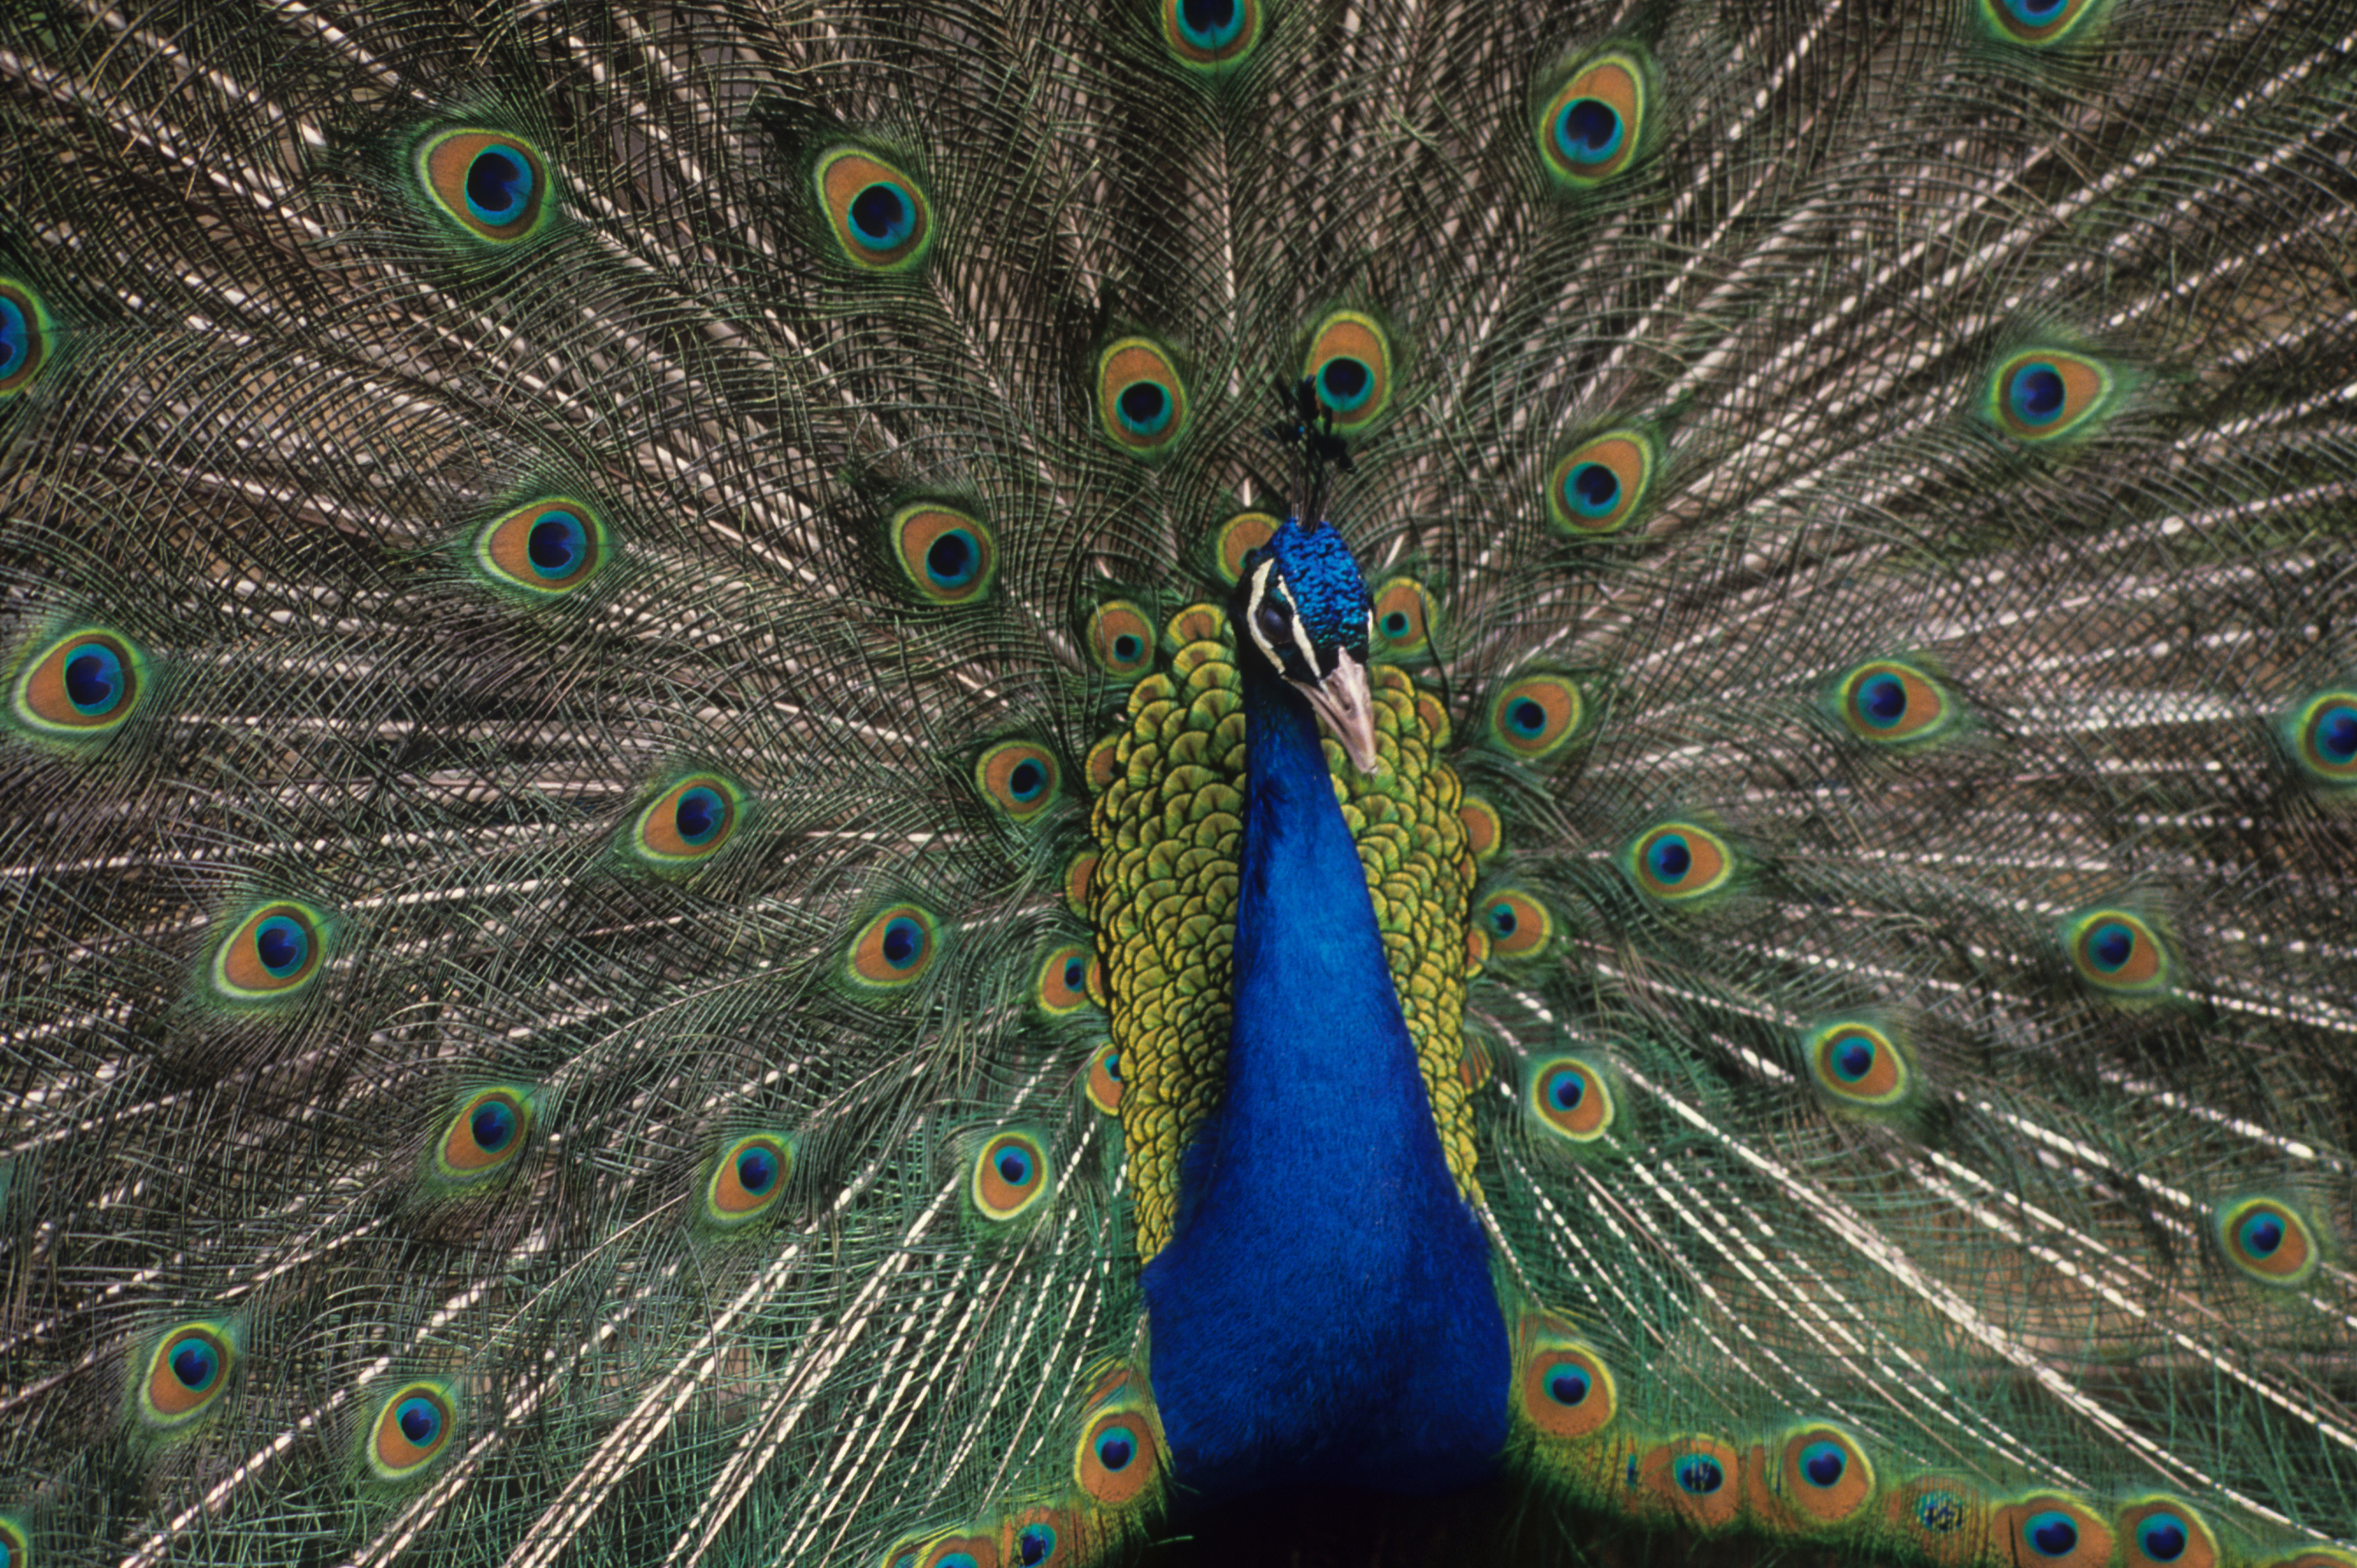 Indian peacock fanning his tail, Lombardy